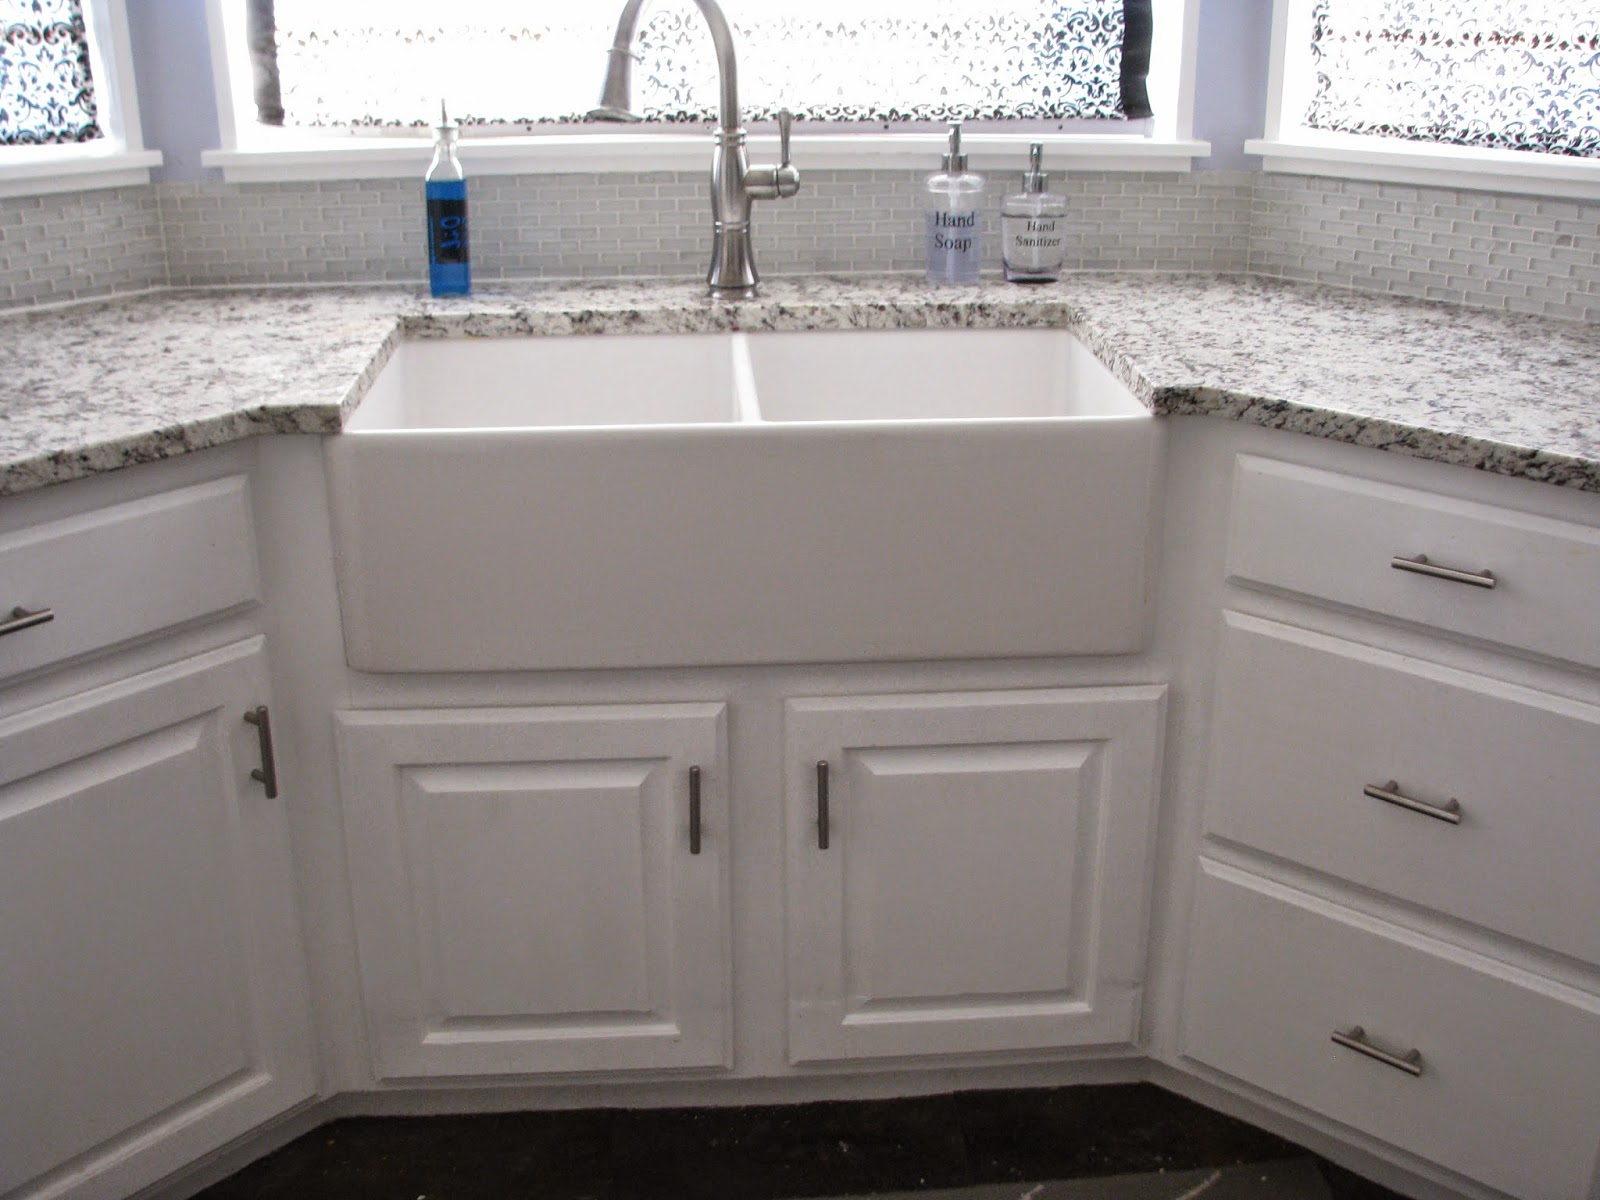 - My So-Called DIY Blog: Tiling Backsplash In A Bay Window With